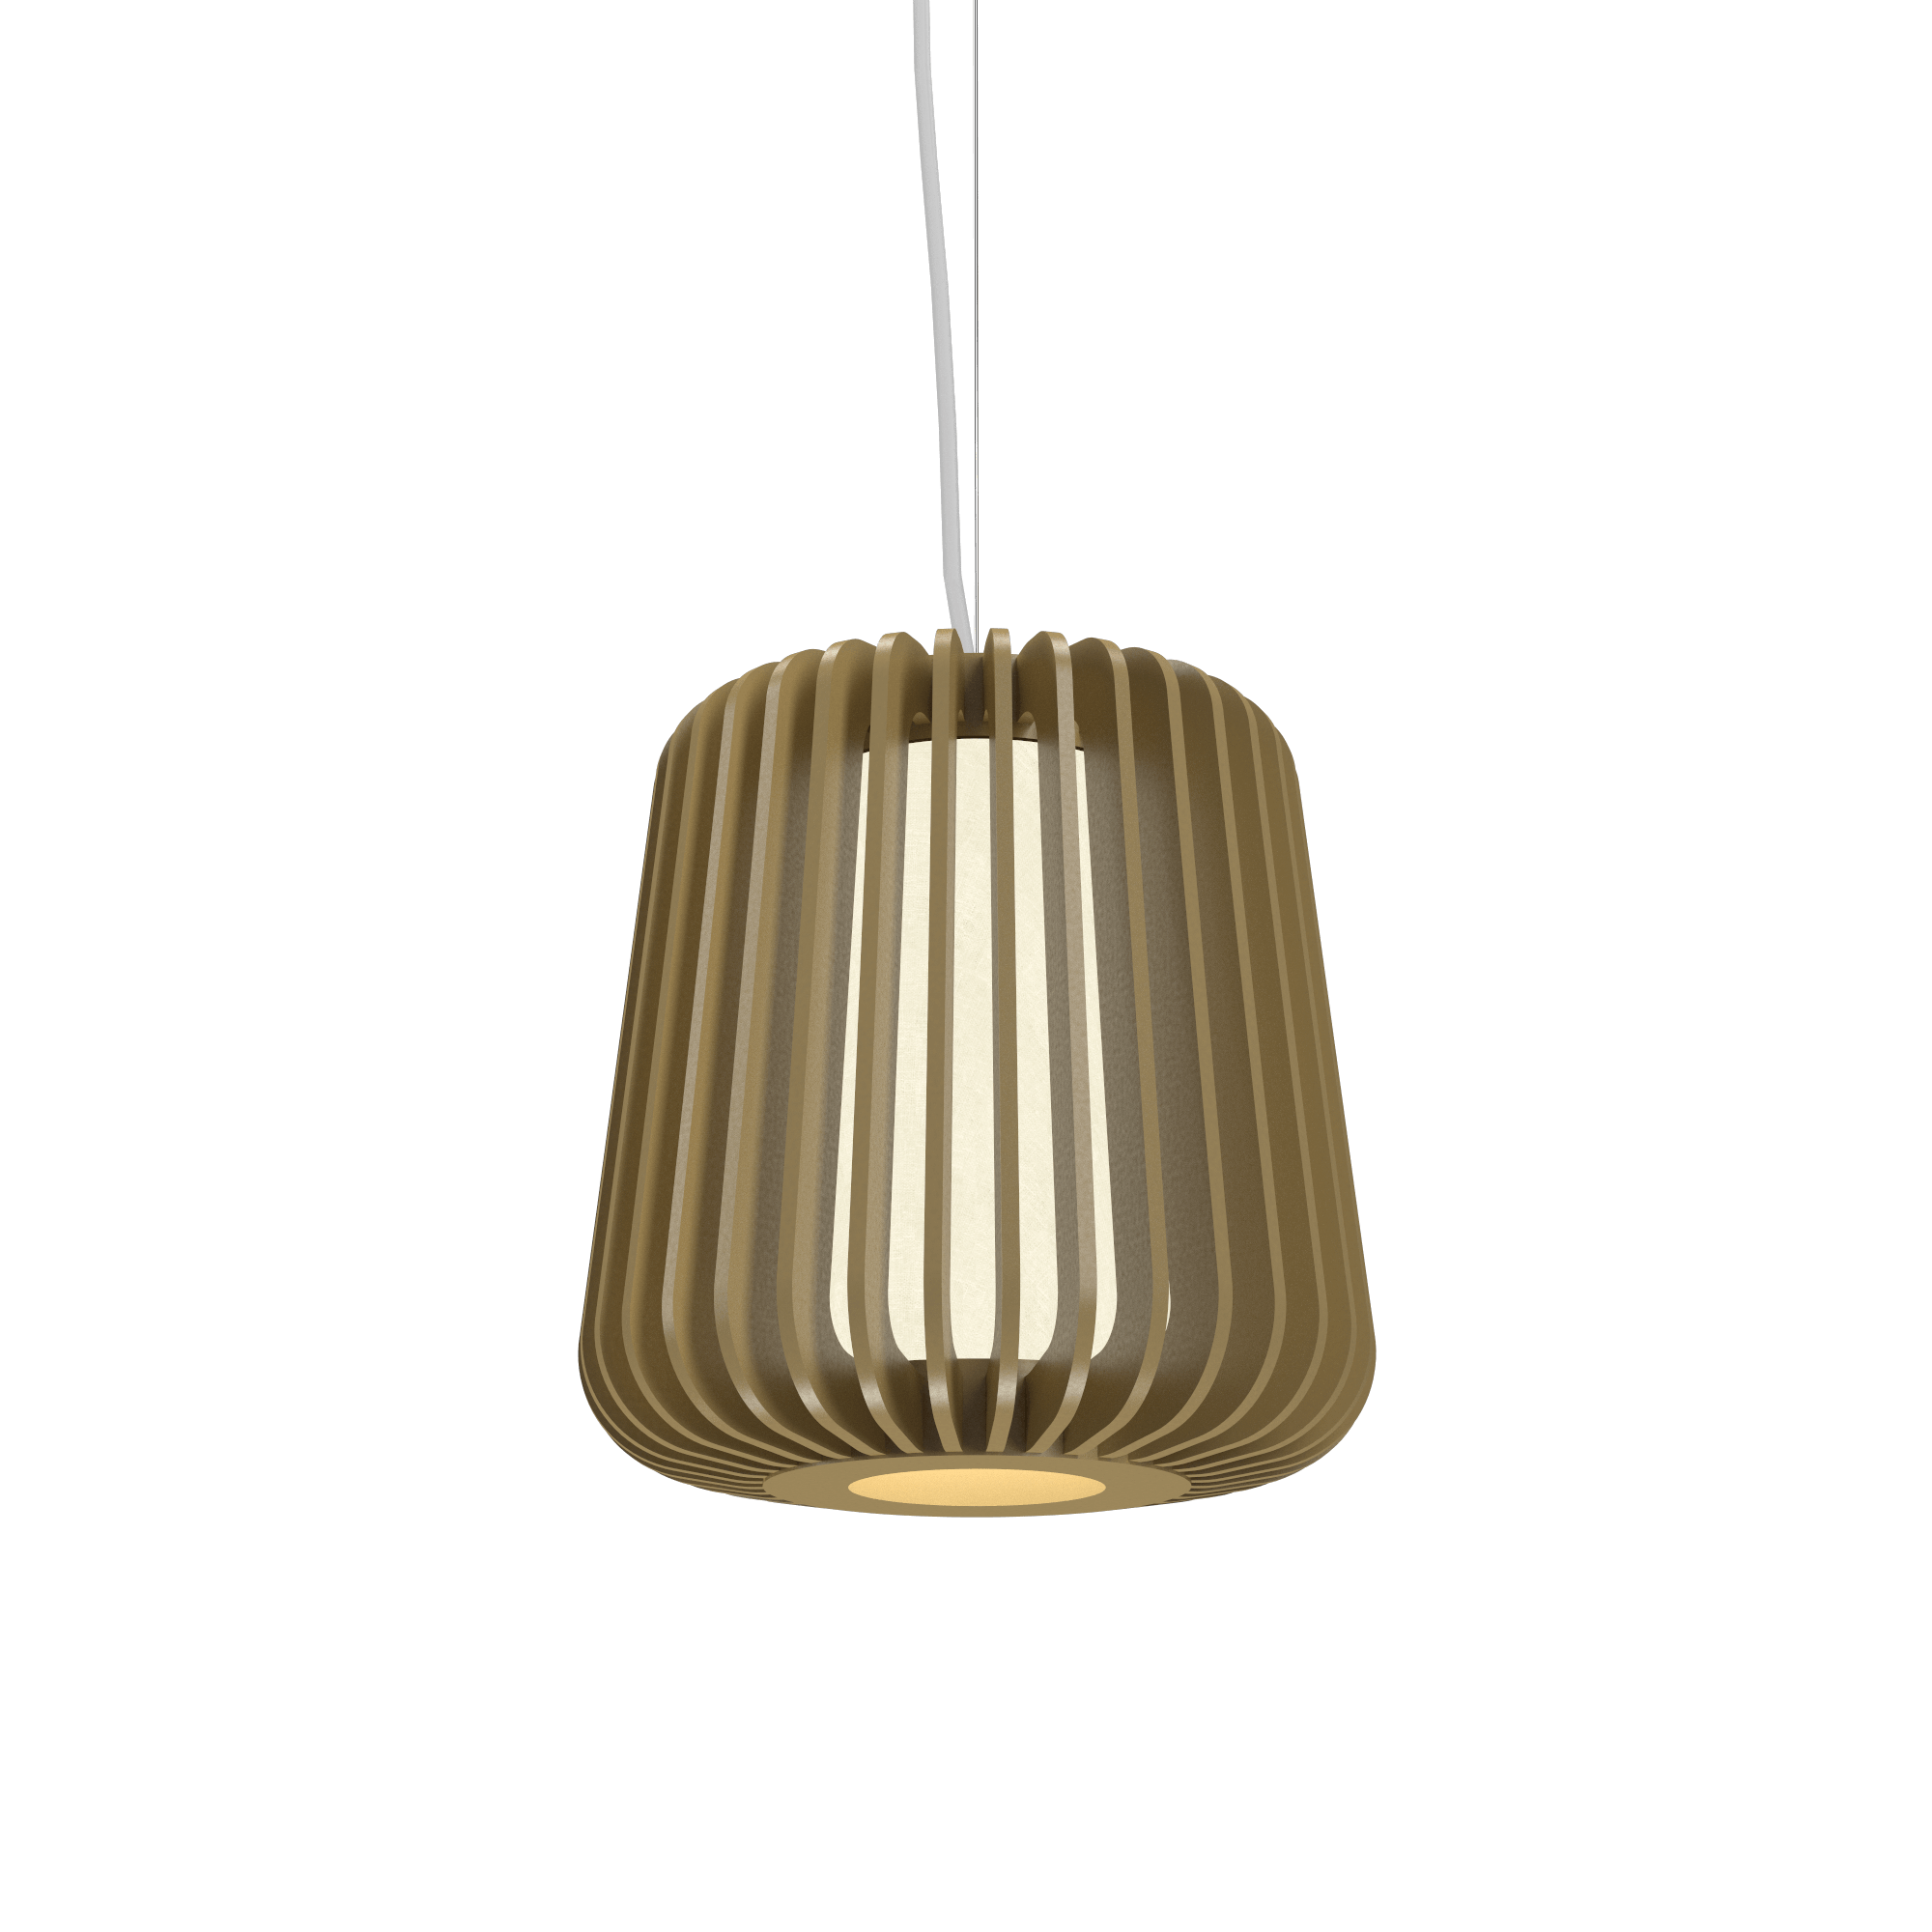 Pendant Lamp Accord Stecche Di Legno 1426 - Stecche Di Legno Line Accord Lighting | Pale Gold